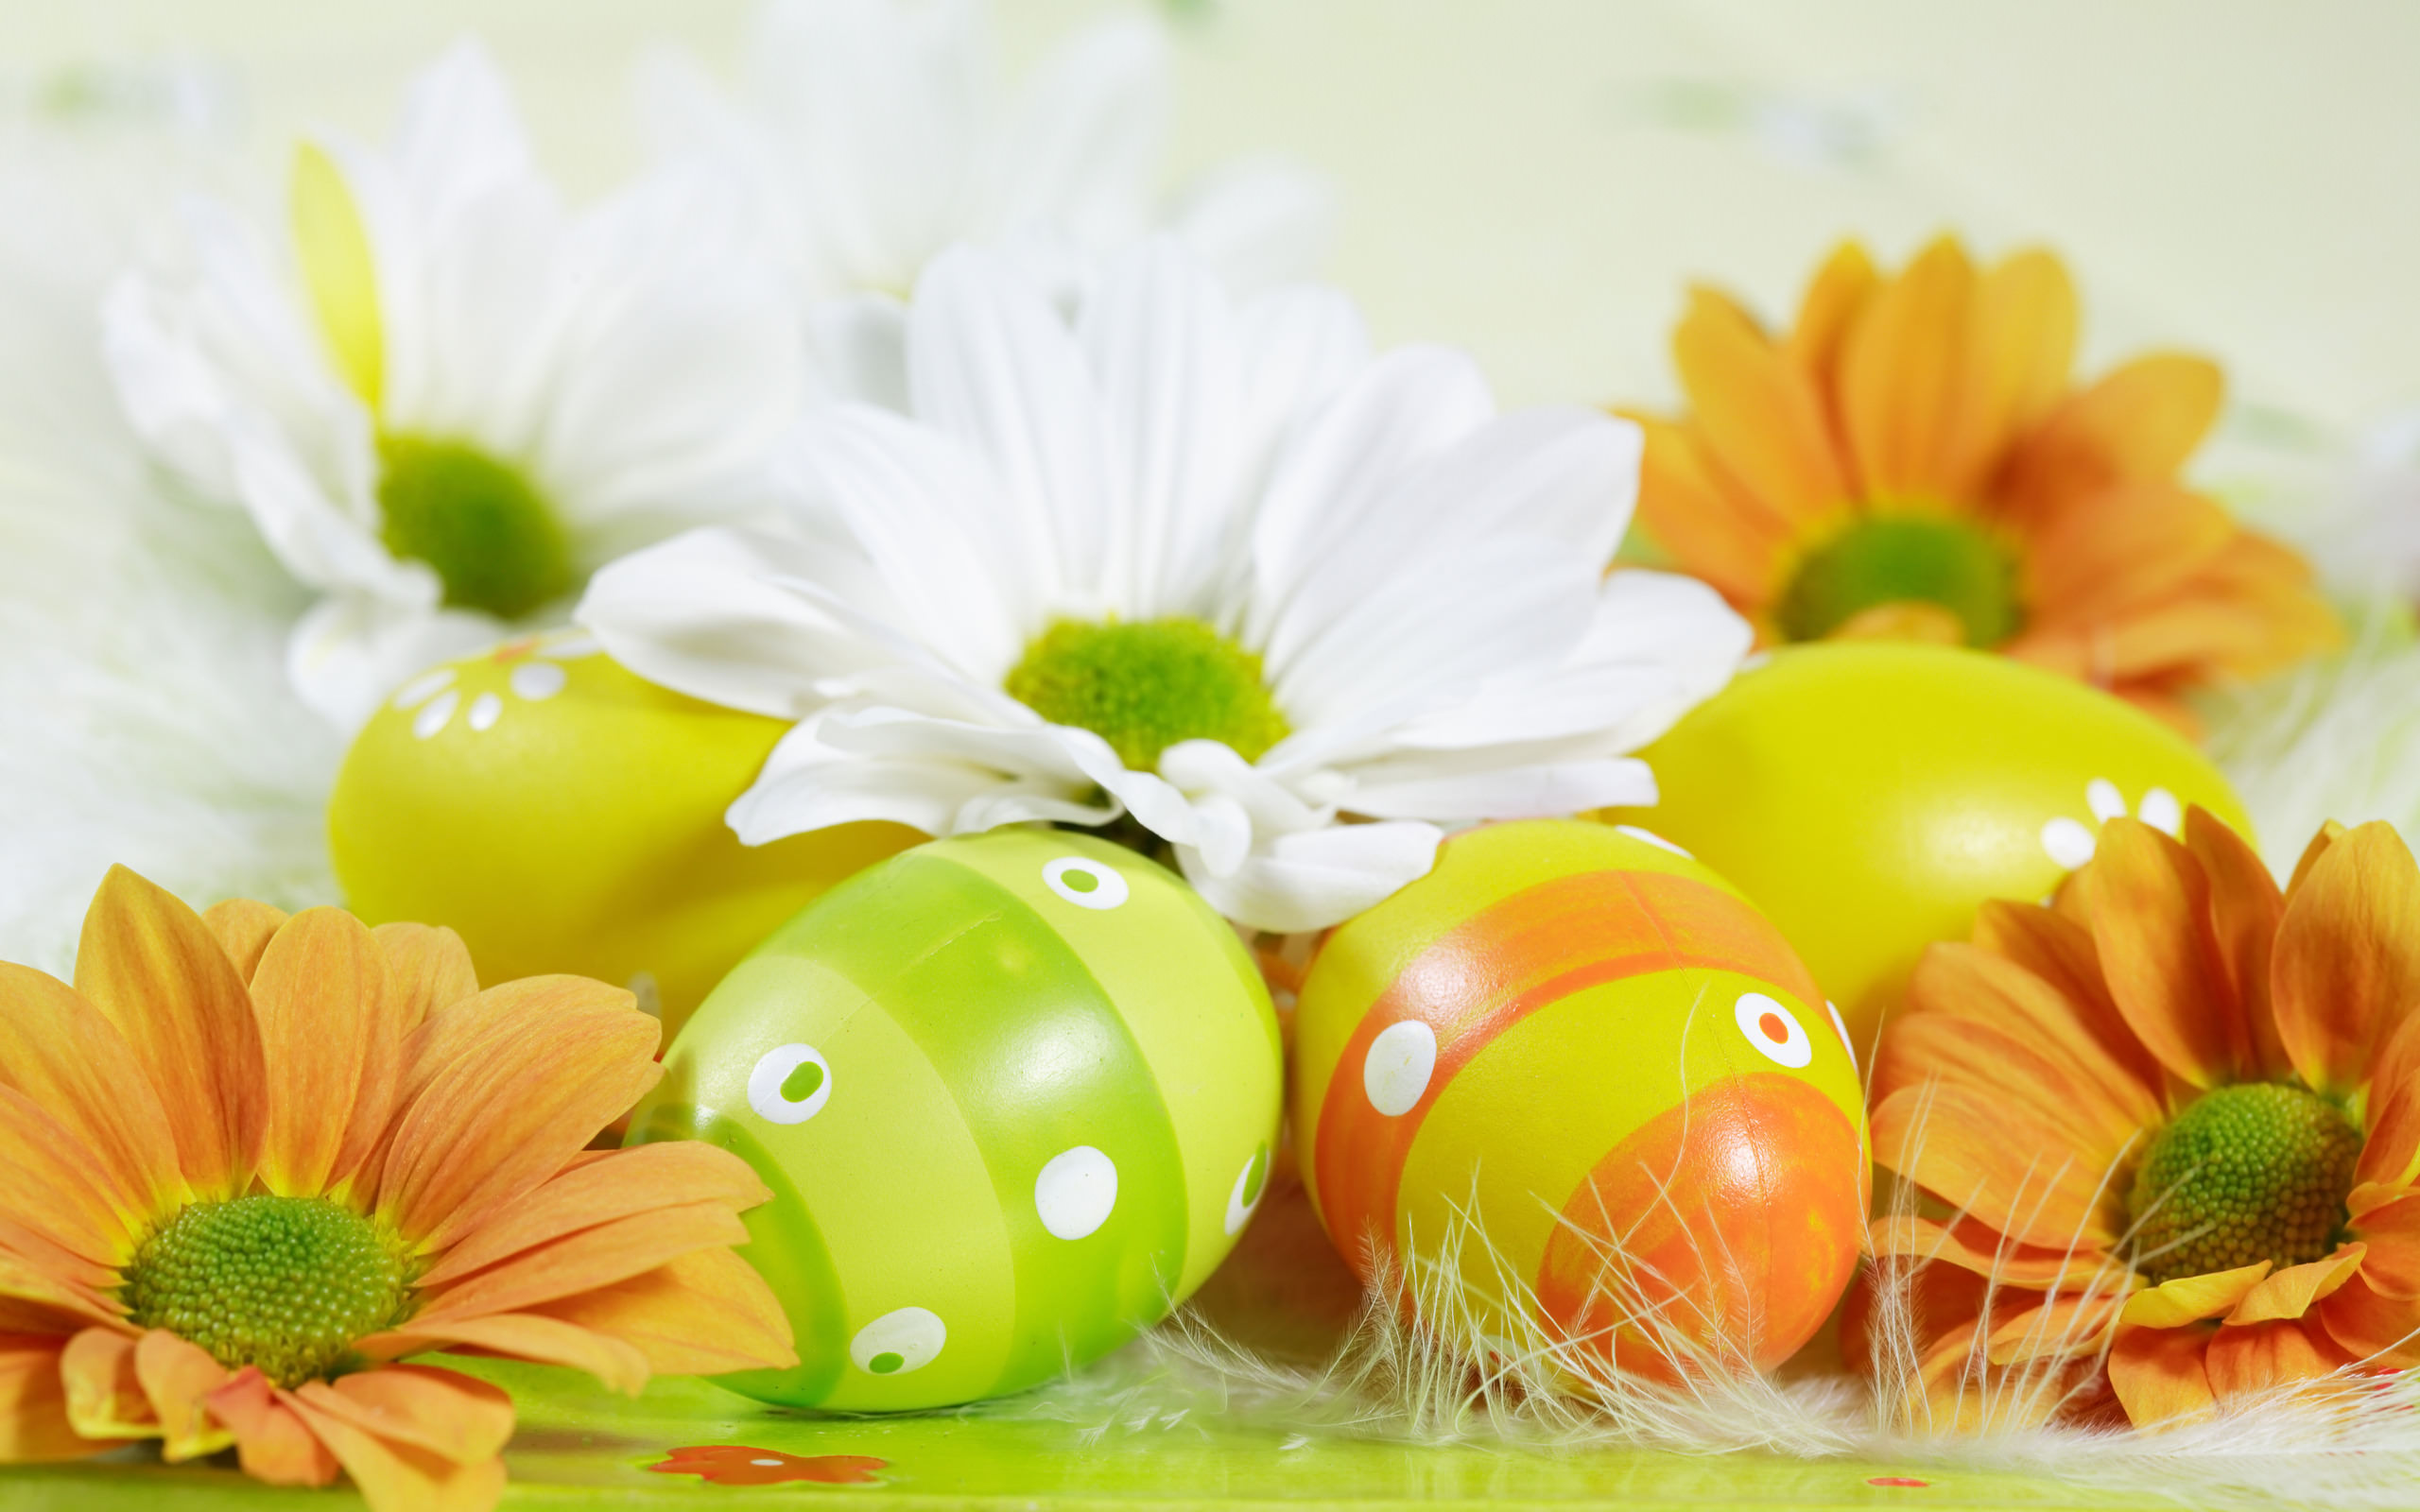 Easter,Background,Designs,Eggs,Flowers,